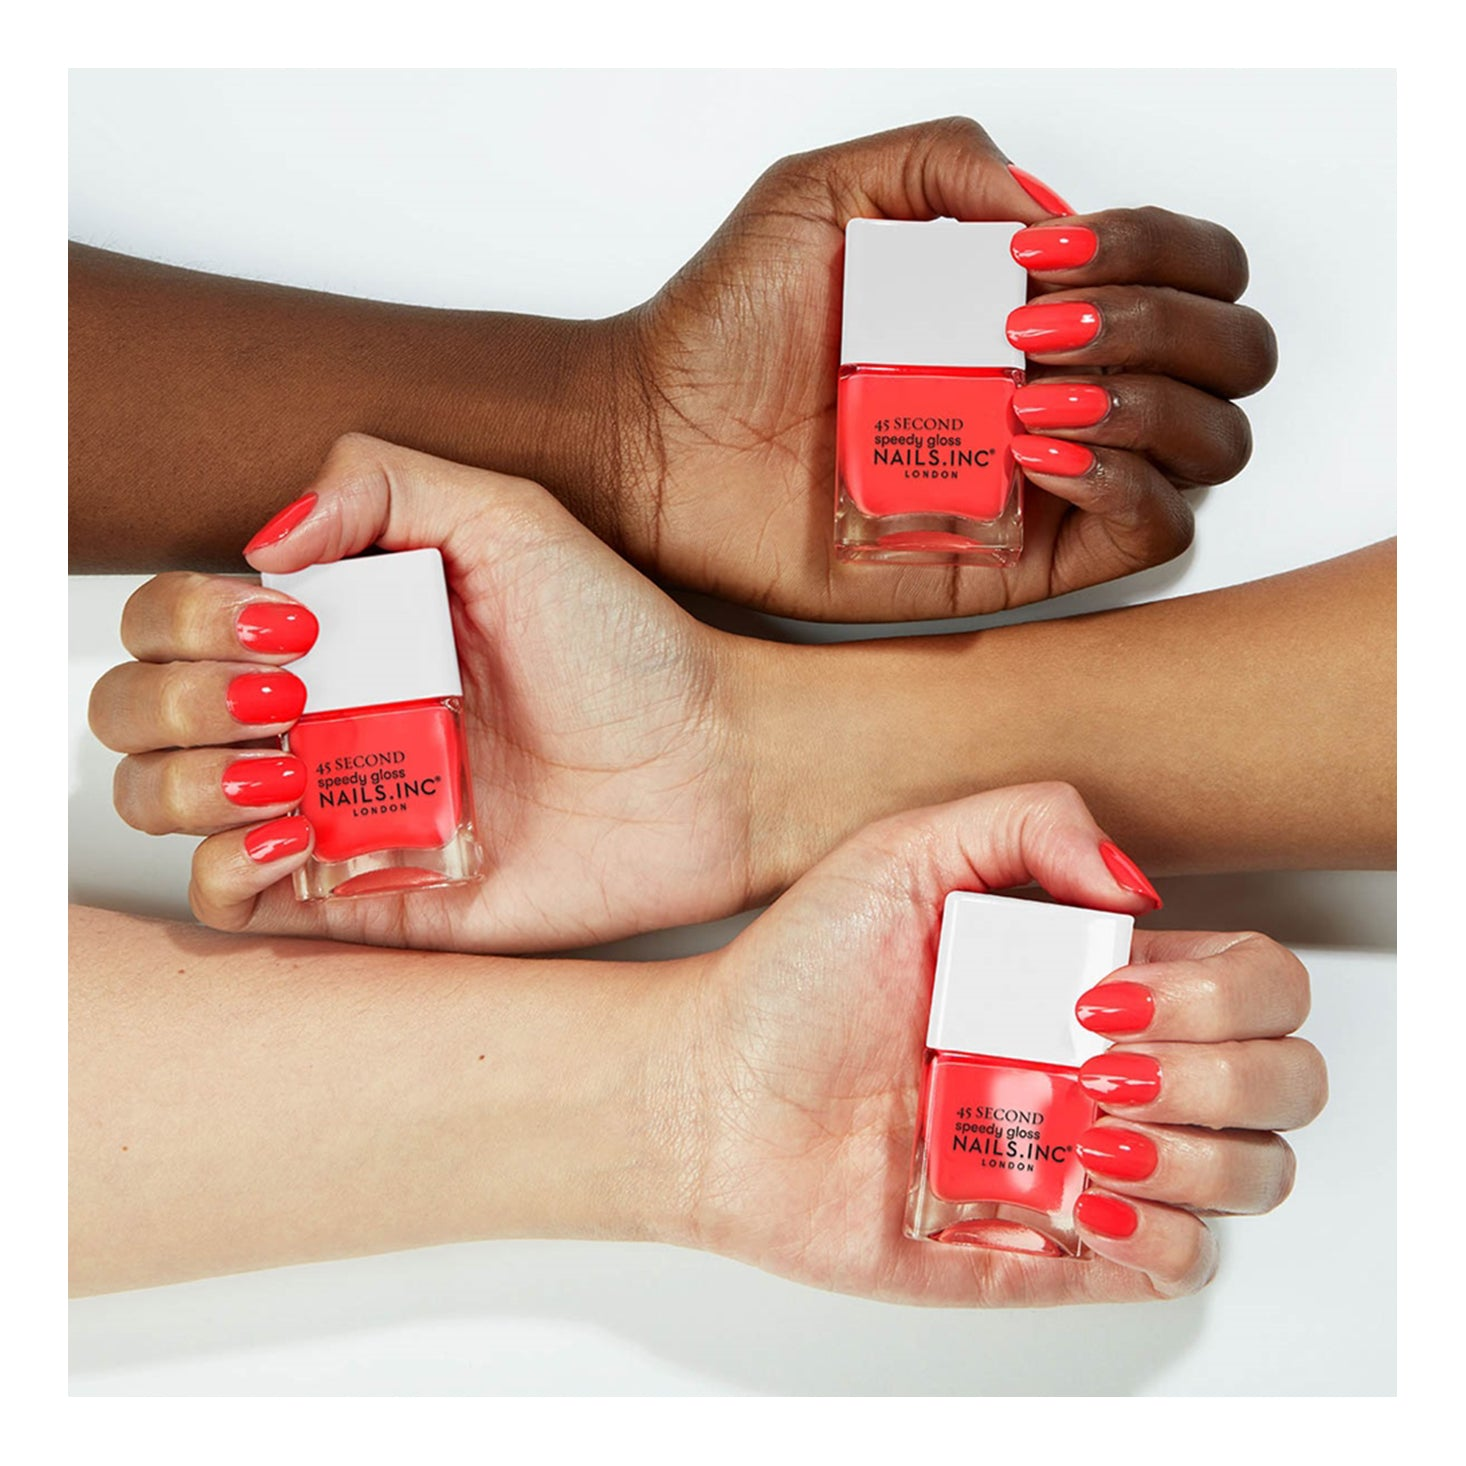 Nails.INC 45 Sec Speedy Gloss - Browsing On Bond Street